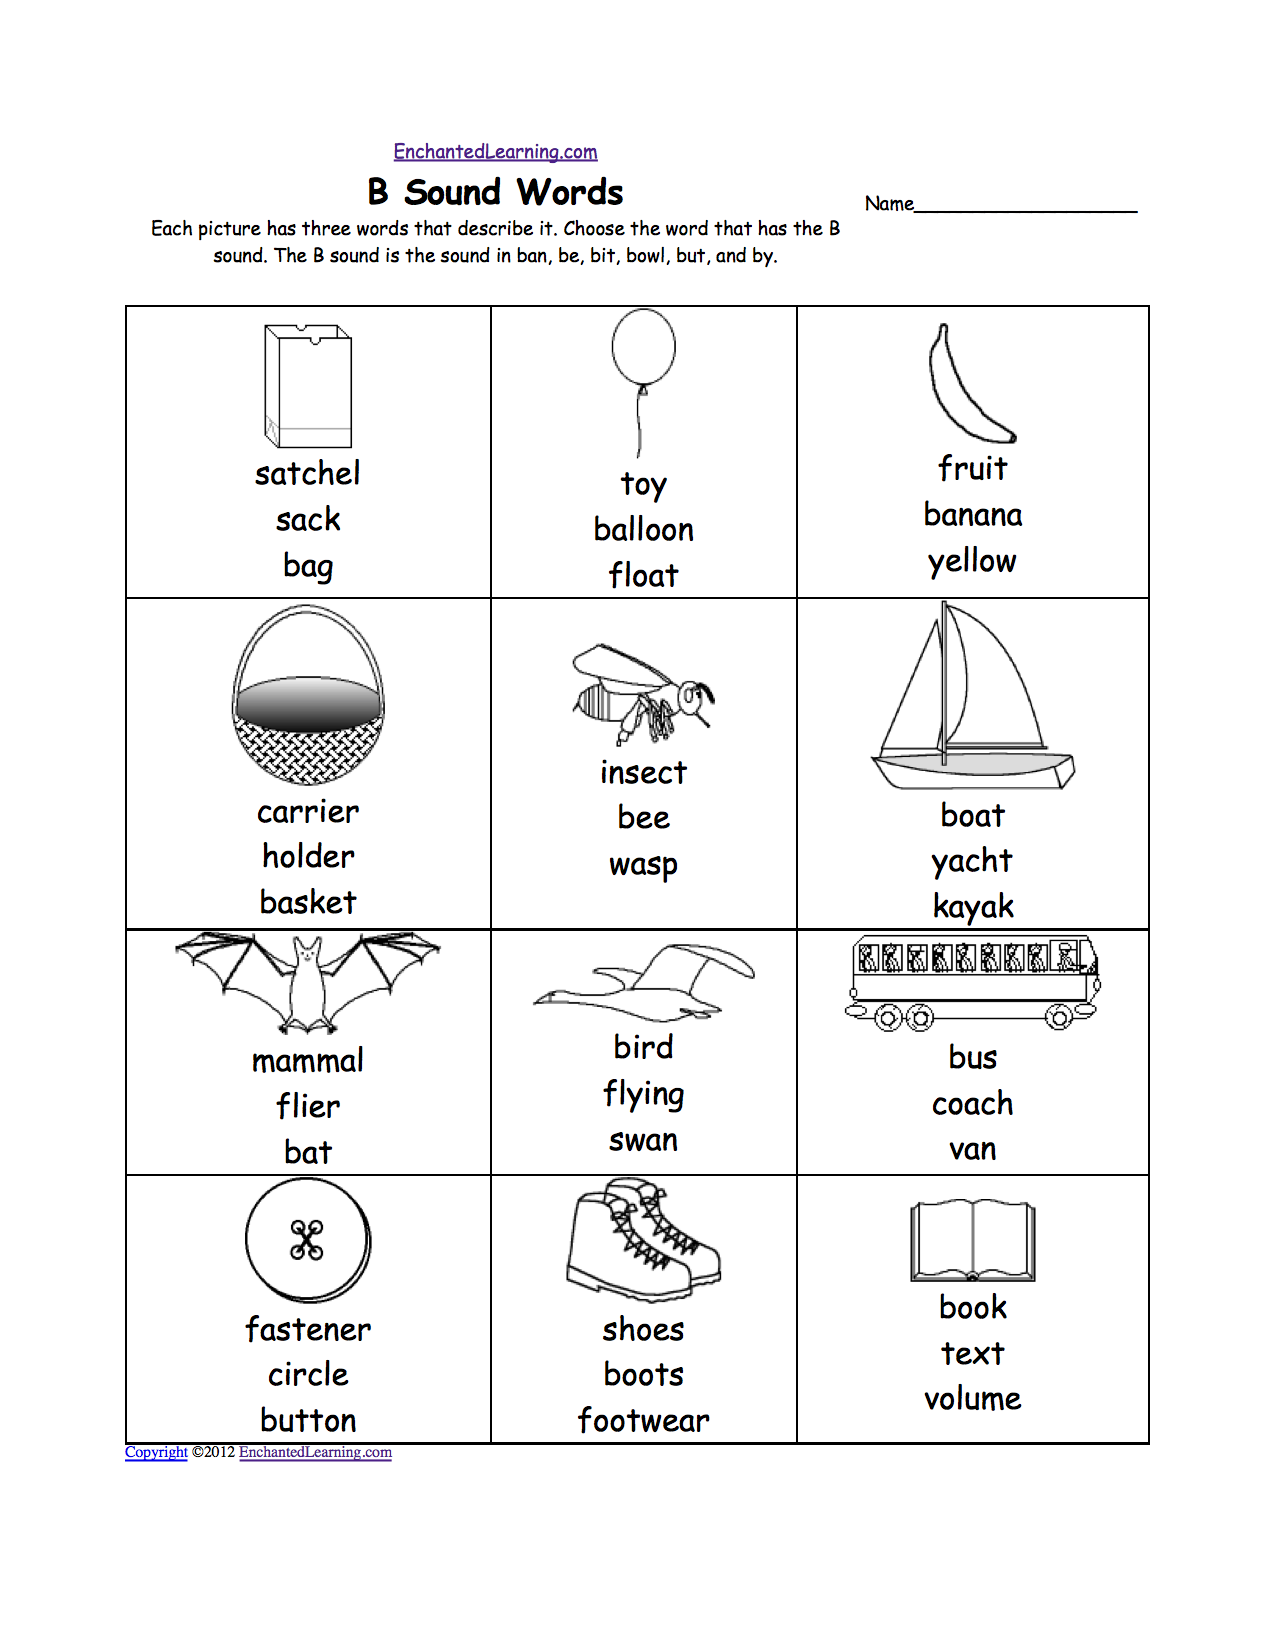 Weirdmailus  Marvellous Phonics Worksheets Multiple Choice Worksheets To Print  With Lovable Quotbquot Sound Phonics Worksheet Multiple Choice Each Picture Has Three Words That Describe It Choose The Word That Has A Quotbquot Sound The Quotbquot Sound Is The Sound  With Astounding Demonstrative Adjective Worksheets Also Worksheet For Class  English In Addition Compound Inequality Worksheets And Maths For  Year Olds Worksheets As Well As Grade  Fraction Worksheets Additionally Animals Habitats Worksheets From Enchantedlearningcom With Weirdmailus  Lovable Phonics Worksheets Multiple Choice Worksheets To Print  With Astounding Quotbquot Sound Phonics Worksheet Multiple Choice Each Picture Has Three Words That Describe It Choose The Word That Has A Quotbquot Sound The Quotbquot Sound Is The Sound  And Marvellous Demonstrative Adjective Worksheets Also Worksheet For Class  English In Addition Compound Inequality Worksheets From Enchantedlearningcom